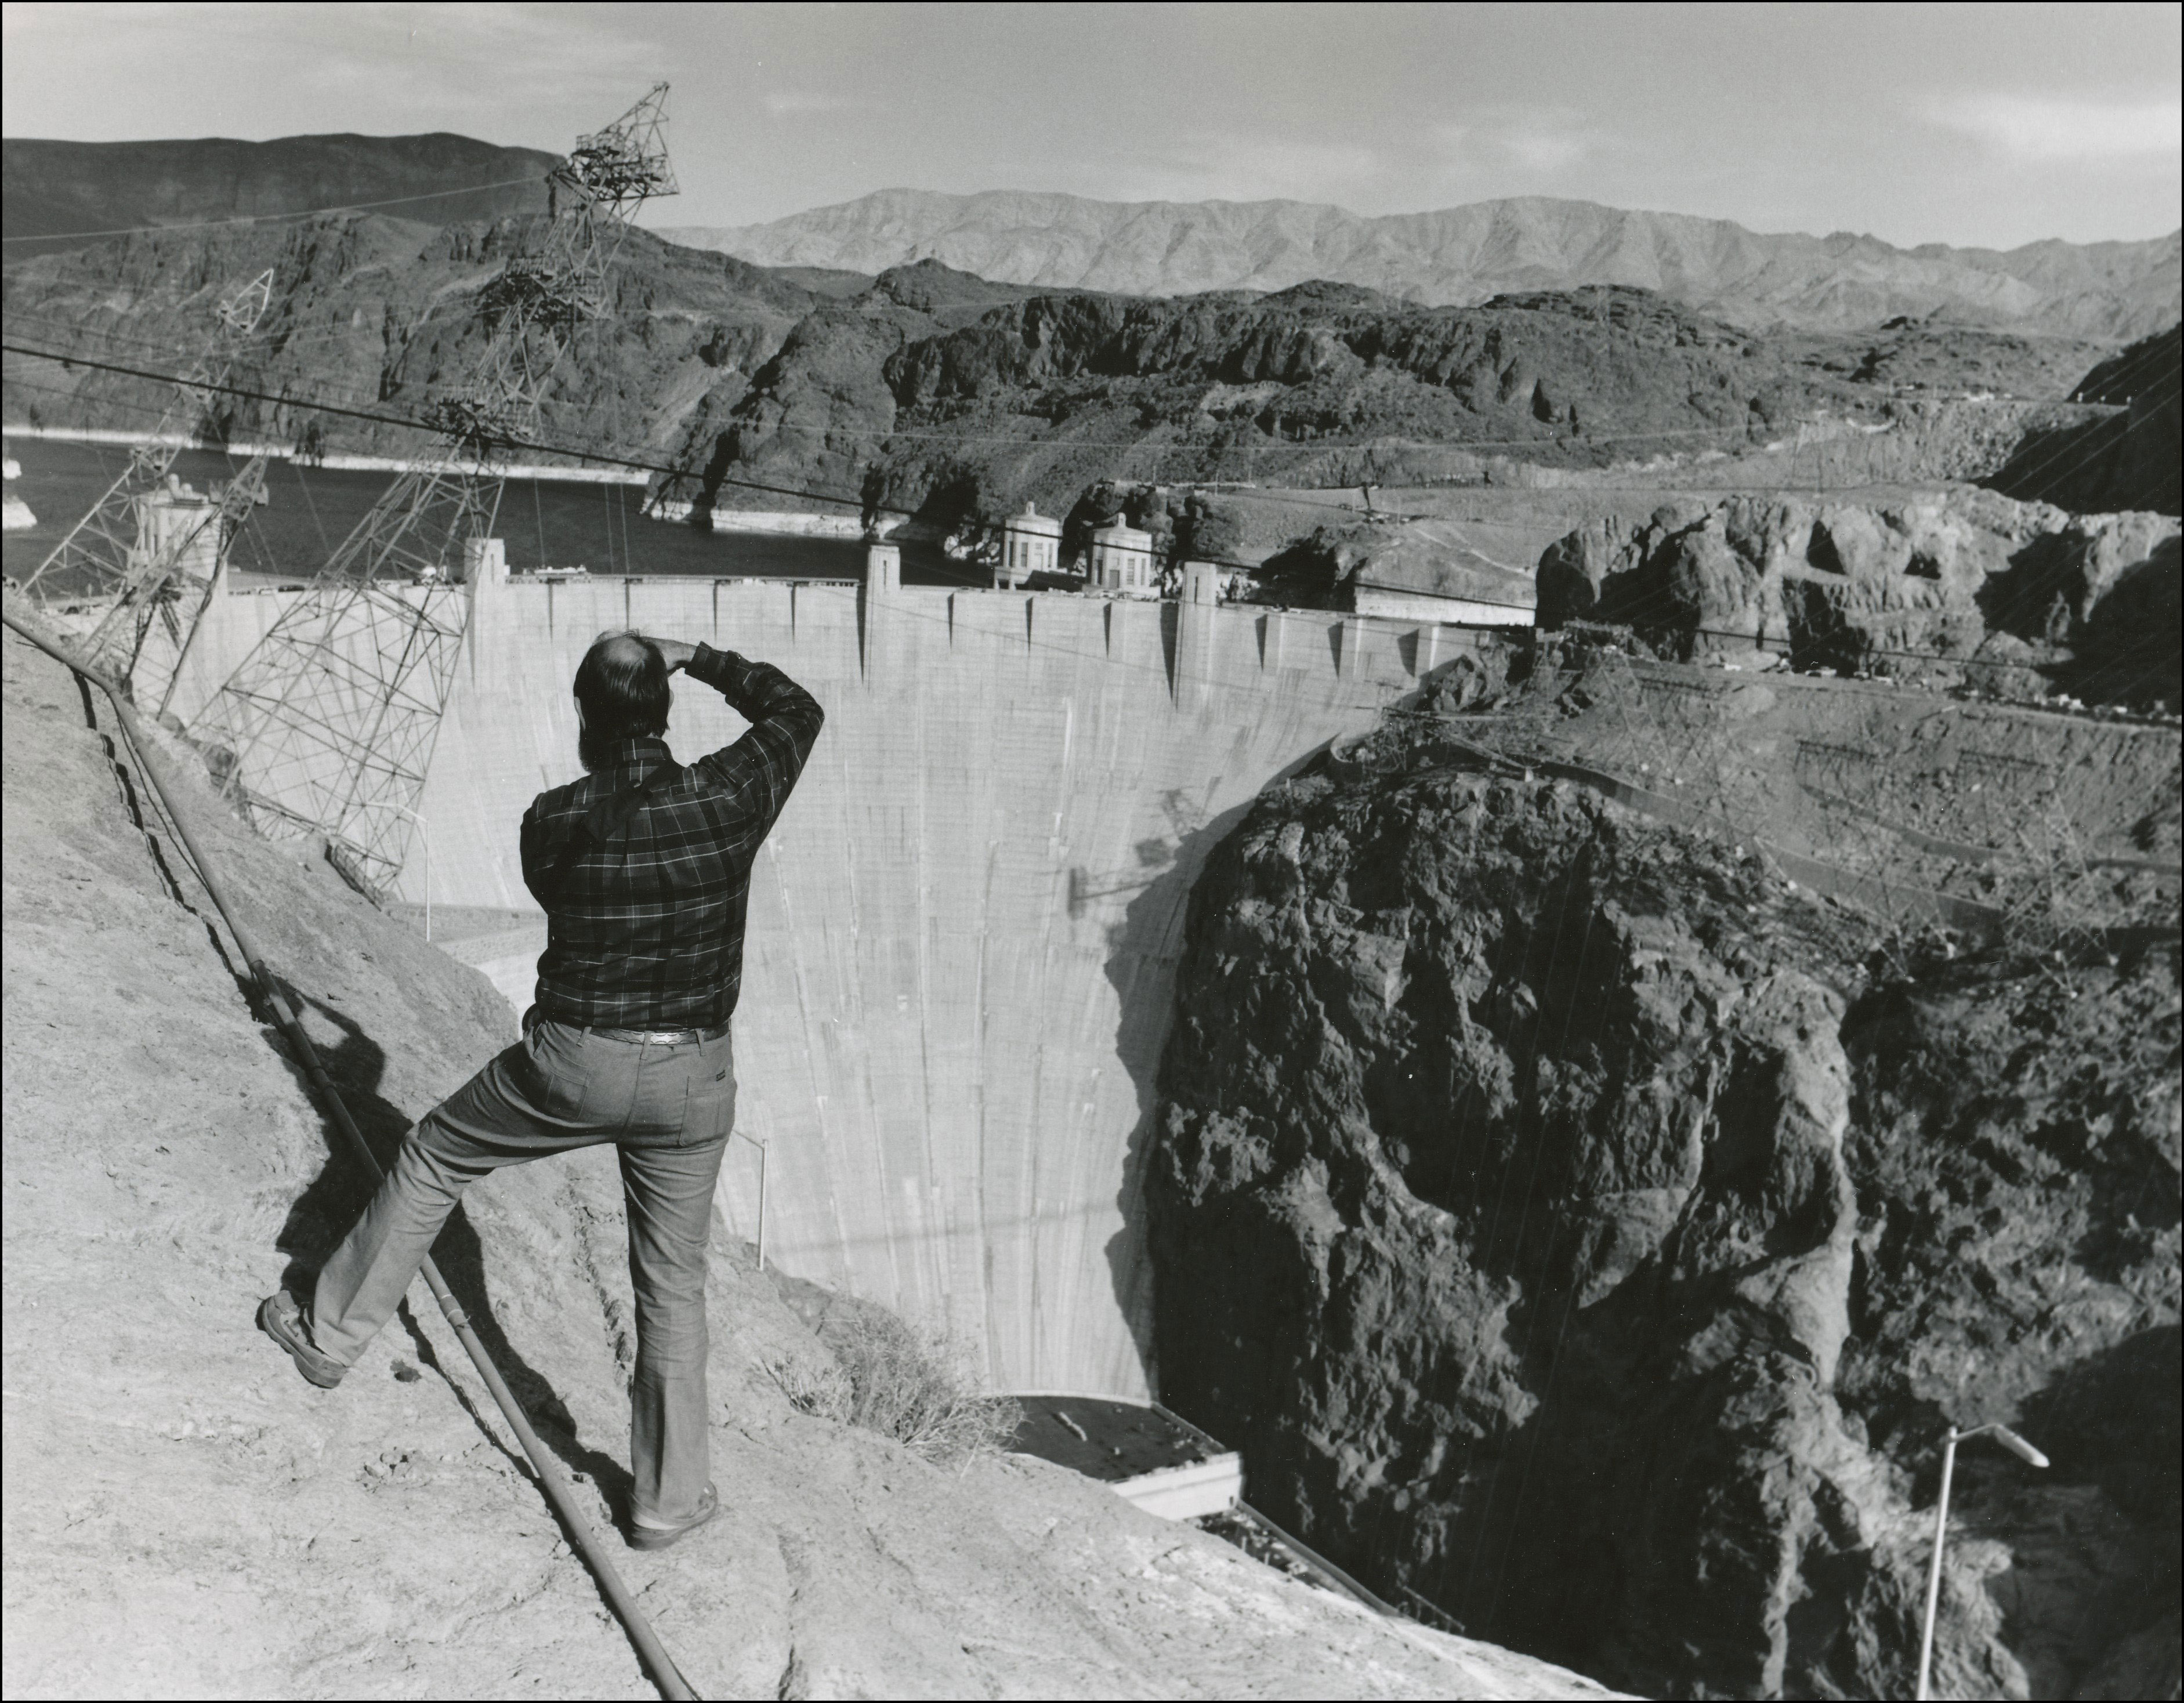 View of the back of a man standing taking a photo of hoover dam. Hoover dam in the background with water behind it.